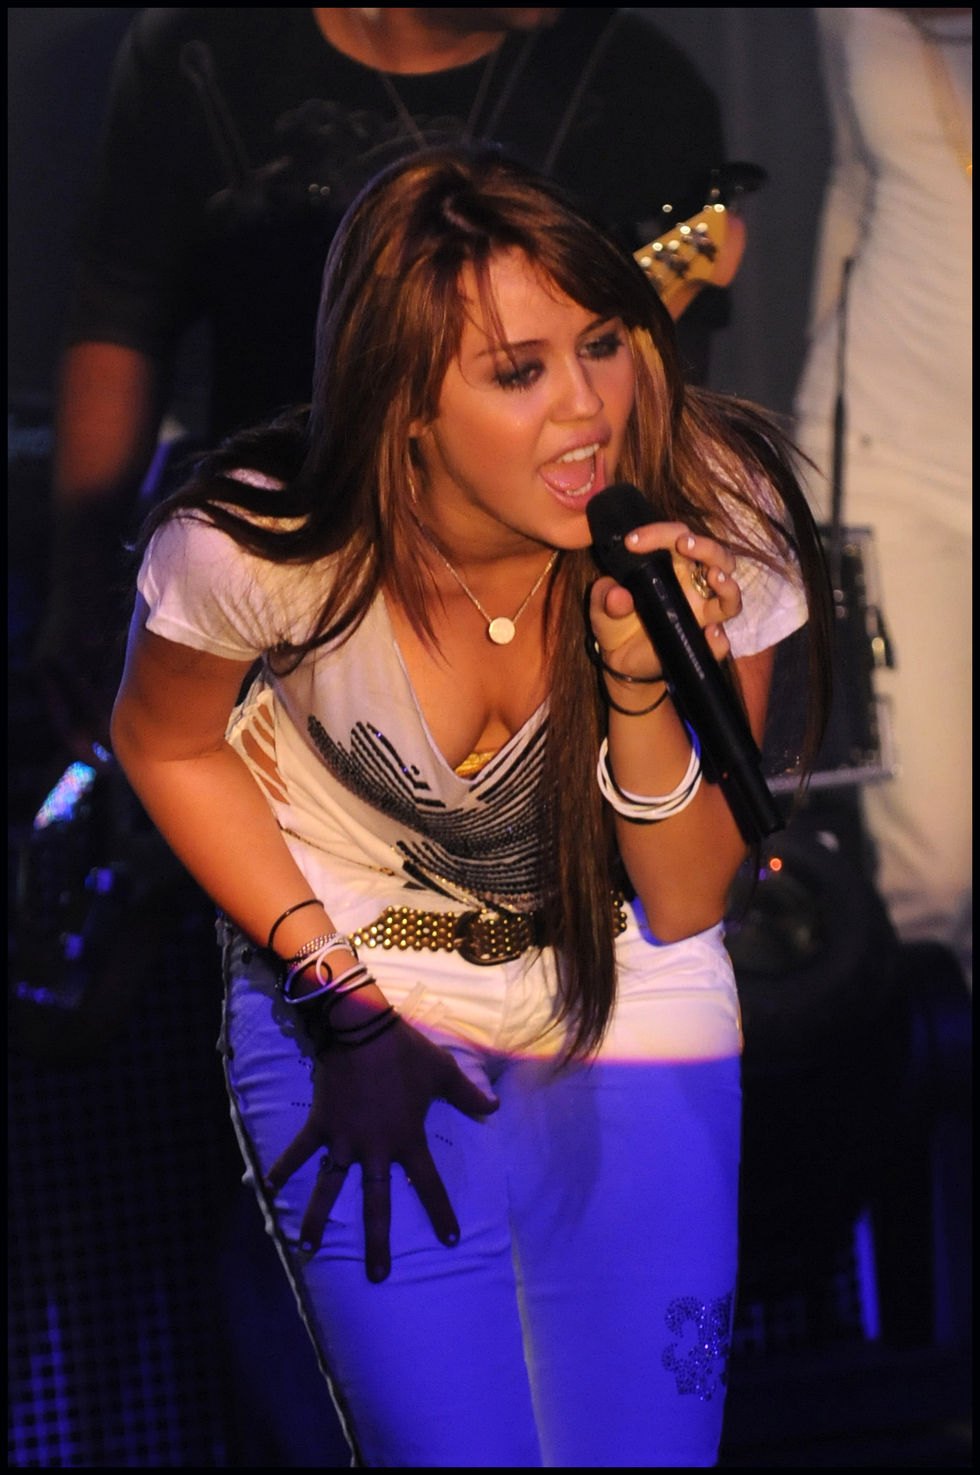 miley-cyrus-performs-at-the-showcase-in-paris-01